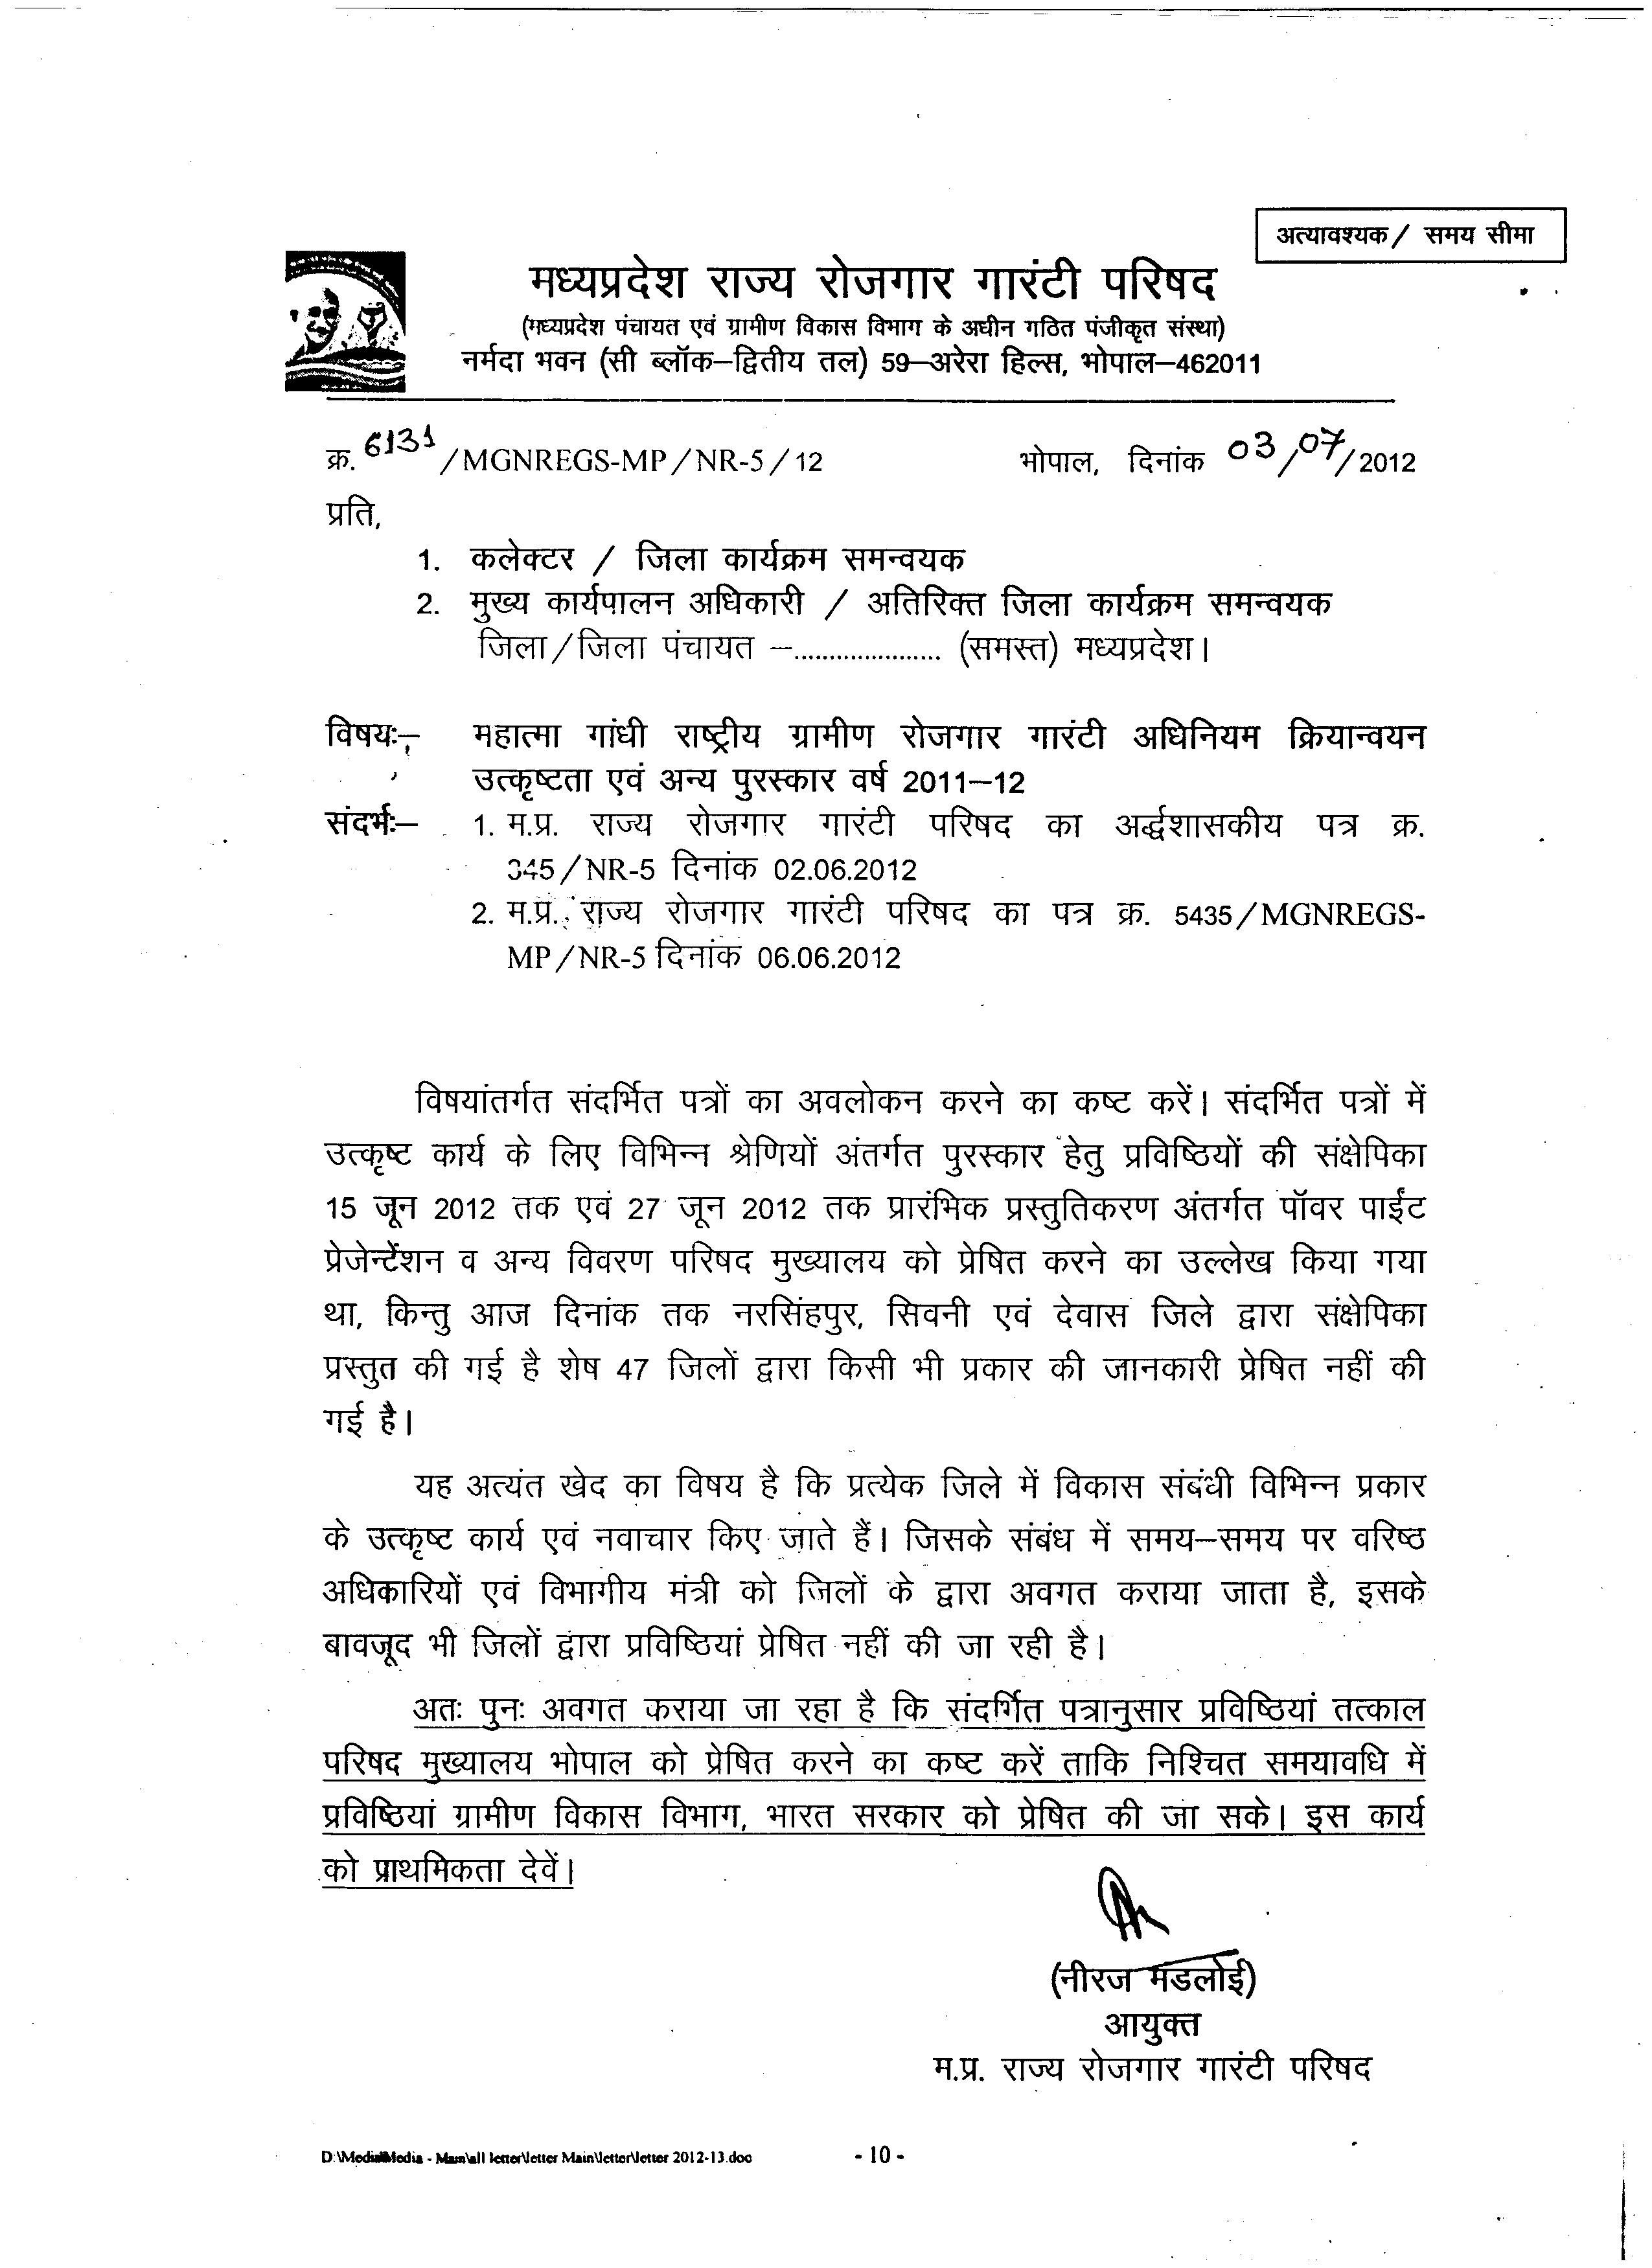 hindi appointment format templates letter sample pdf dues payment